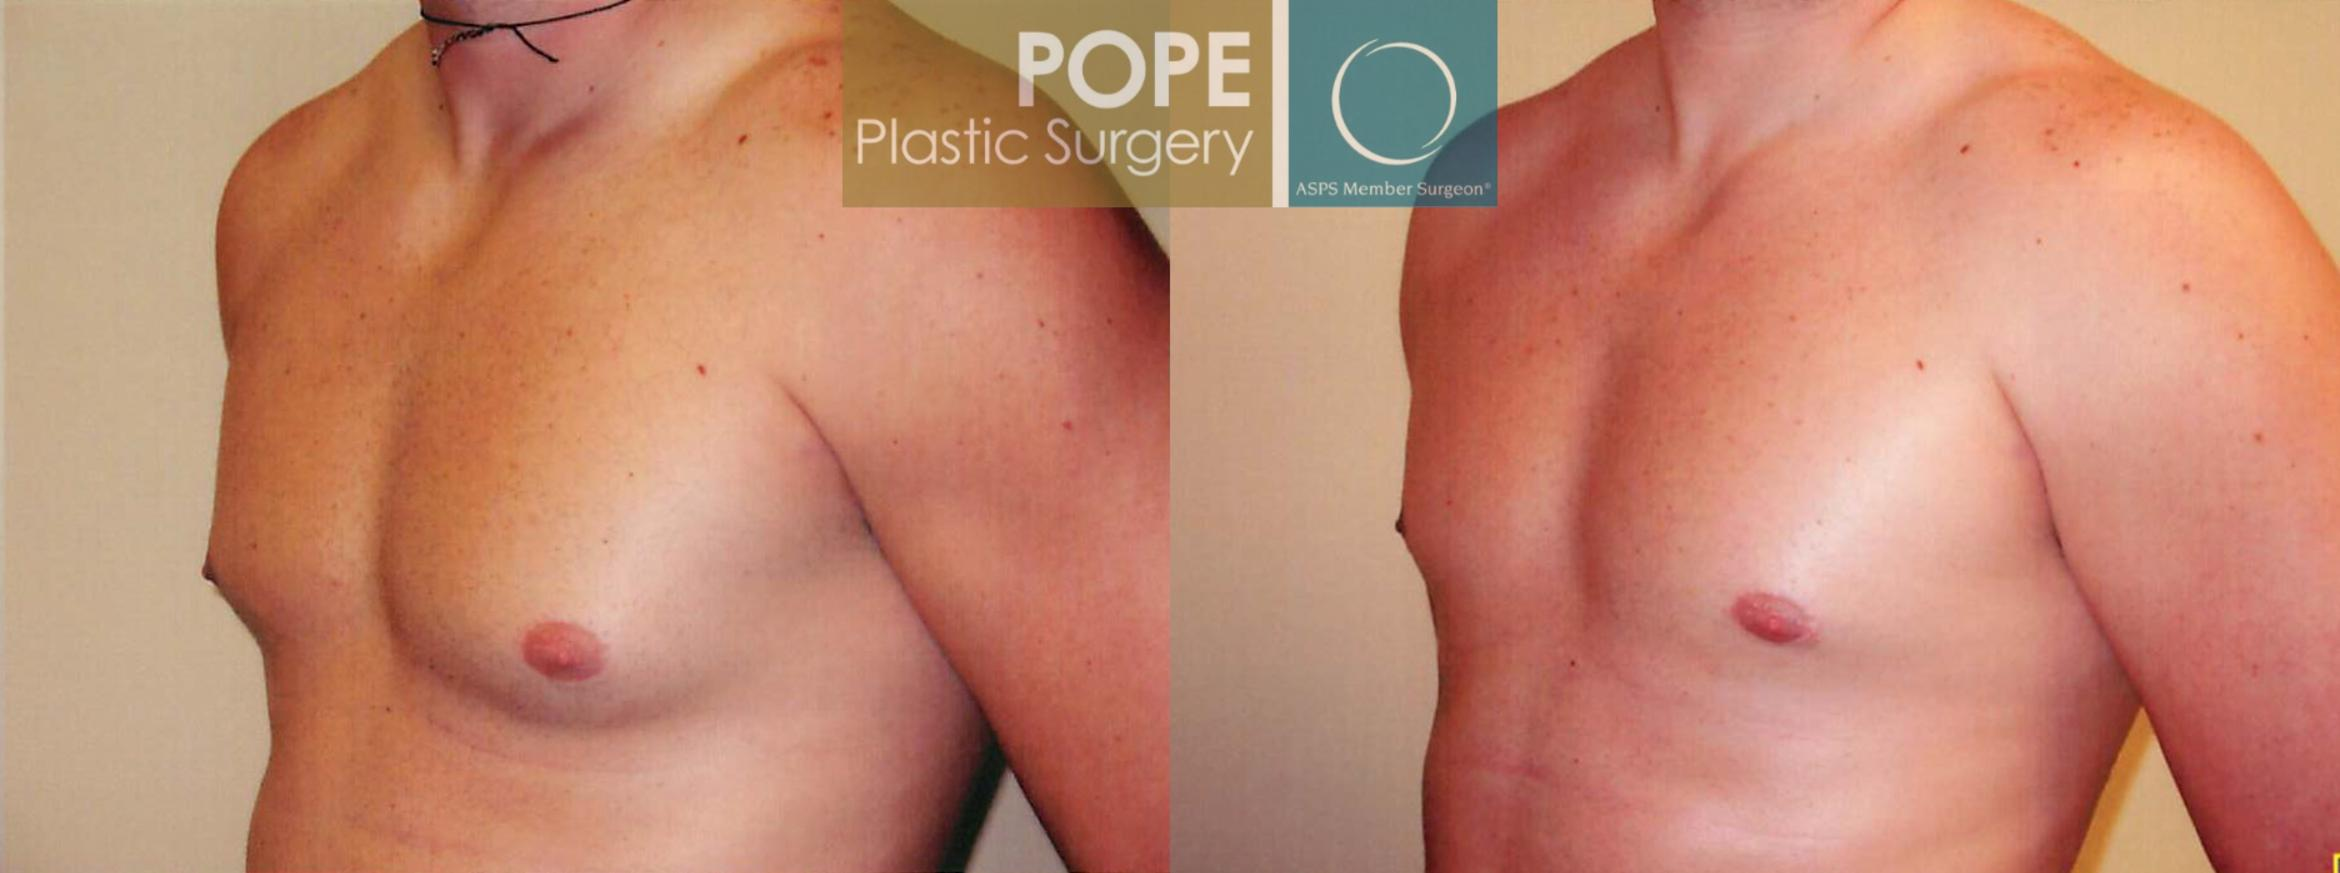 Male Breast Reduction Case 98 Before & After View #2 | Orlando, FL | Pope Plastic Surgery